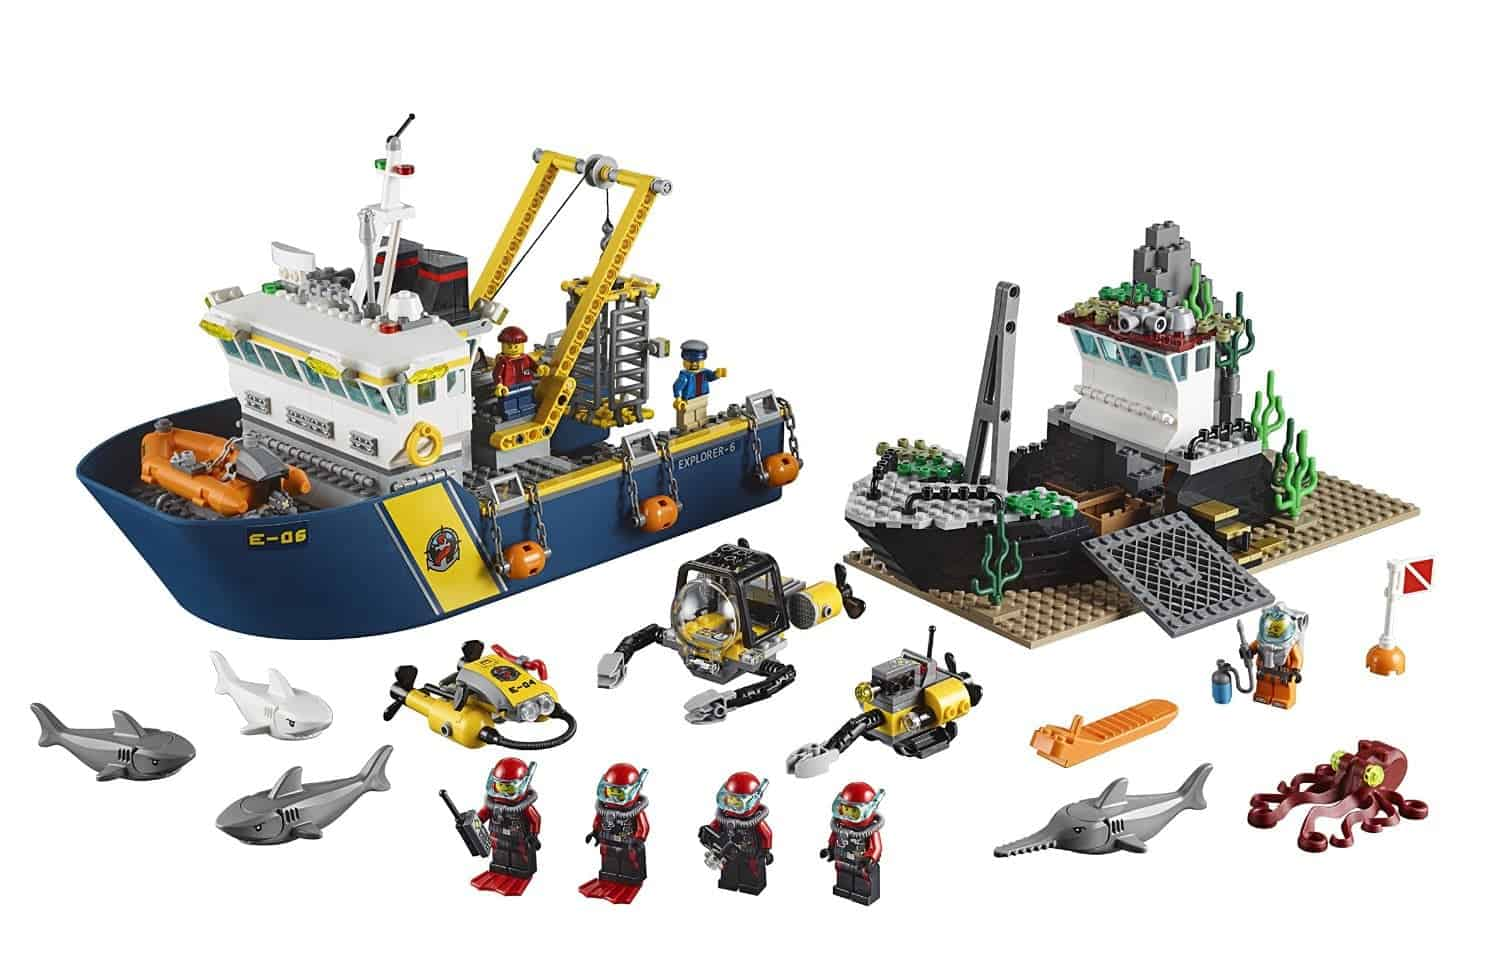 Lego Gift Ideas by Age - Toddler to Twelve Years: Deep Sea Exploration | www.thepinningmama.com